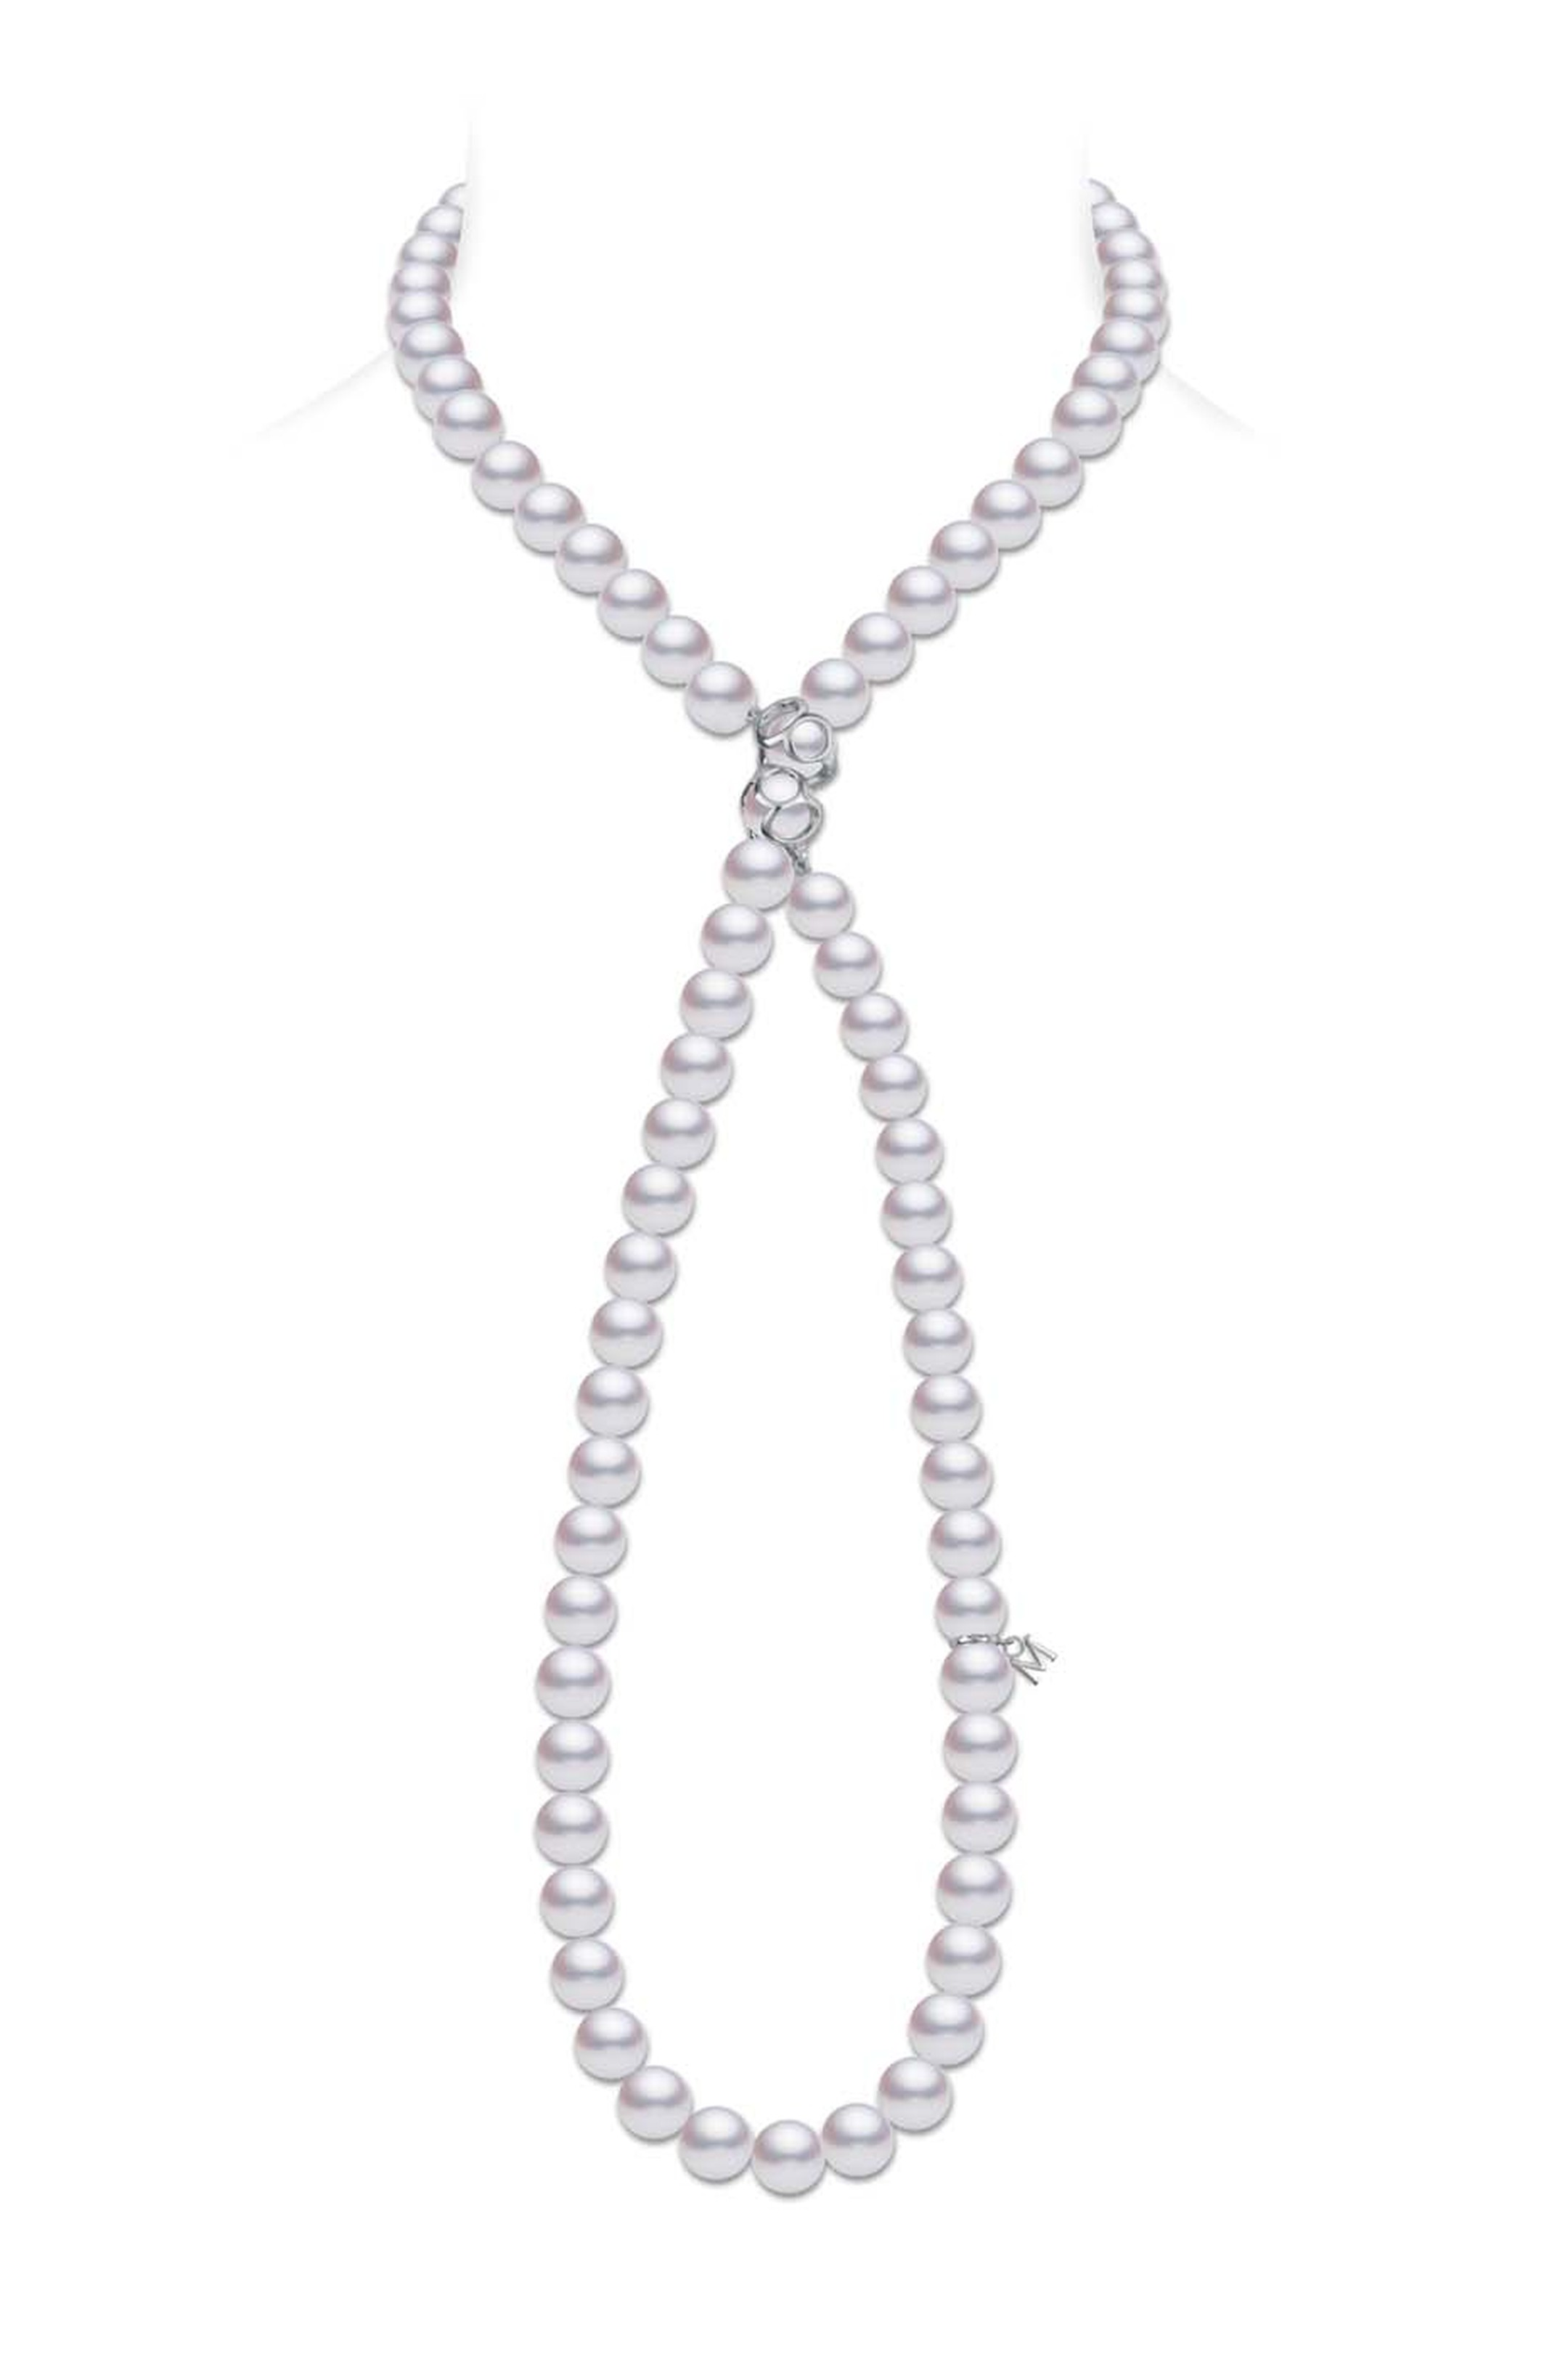 Mikimoto's Double Eight necklace is available from the pearl jeweller's New Bond Street Boutique and Harrods Fine Jewellery Room.